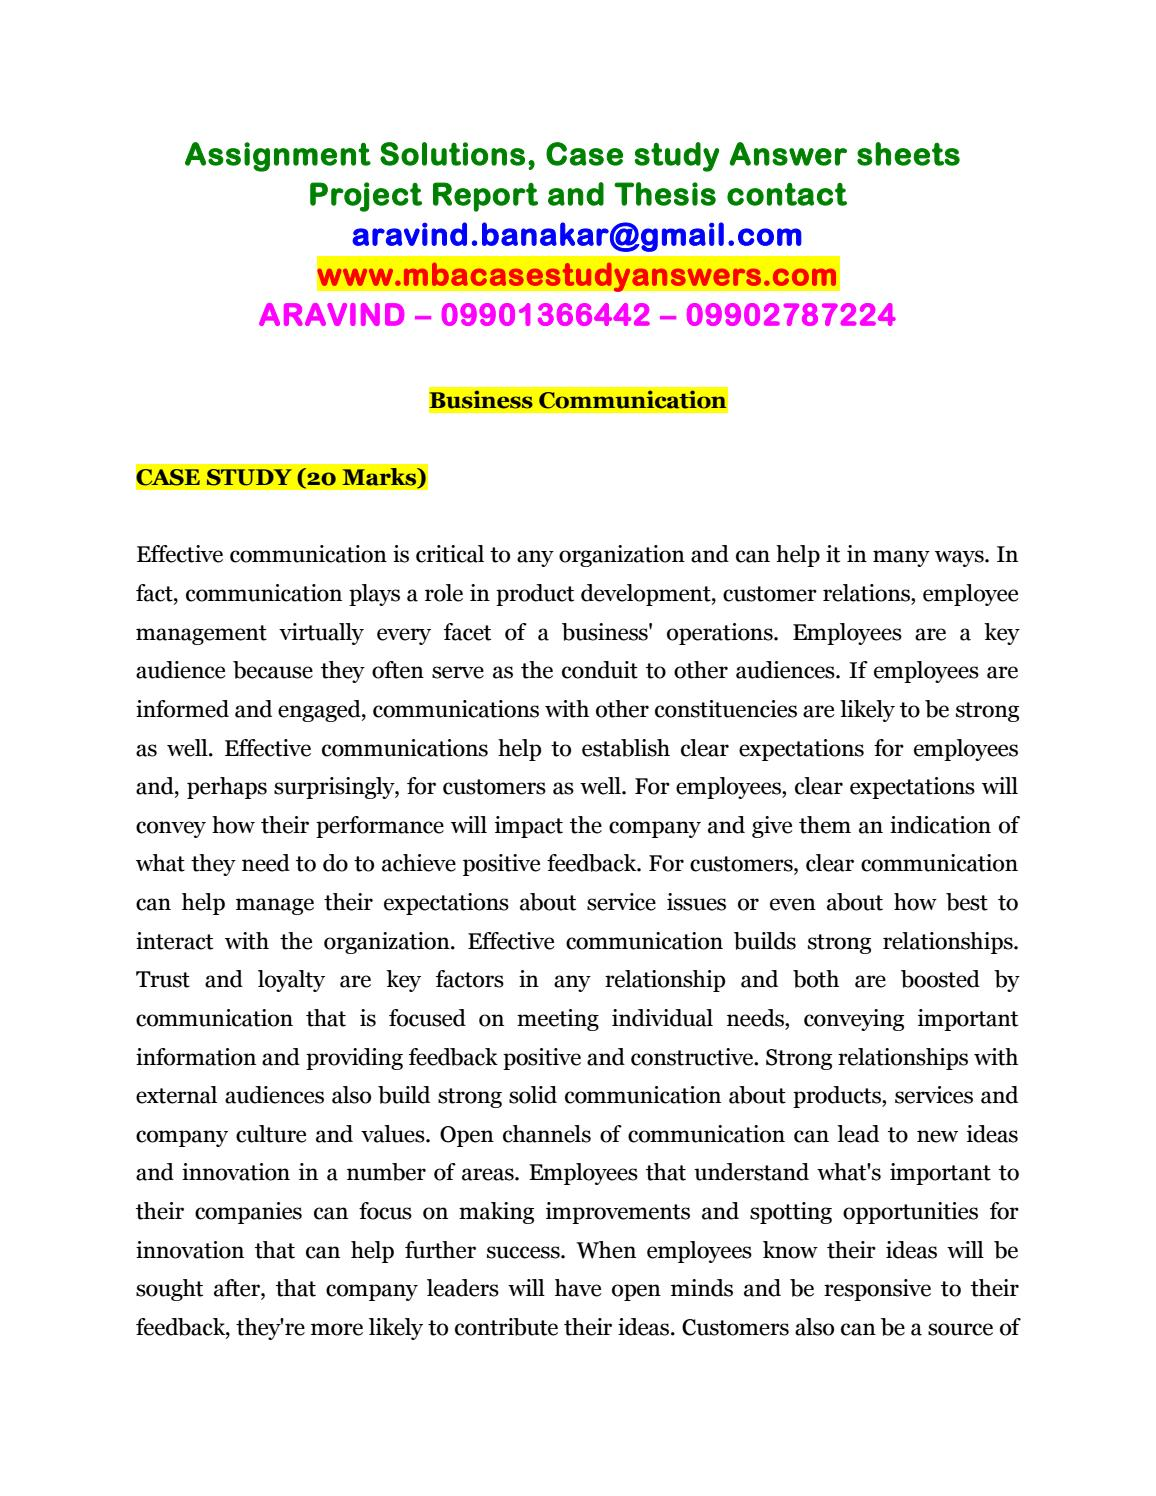 case study of business communication in organization